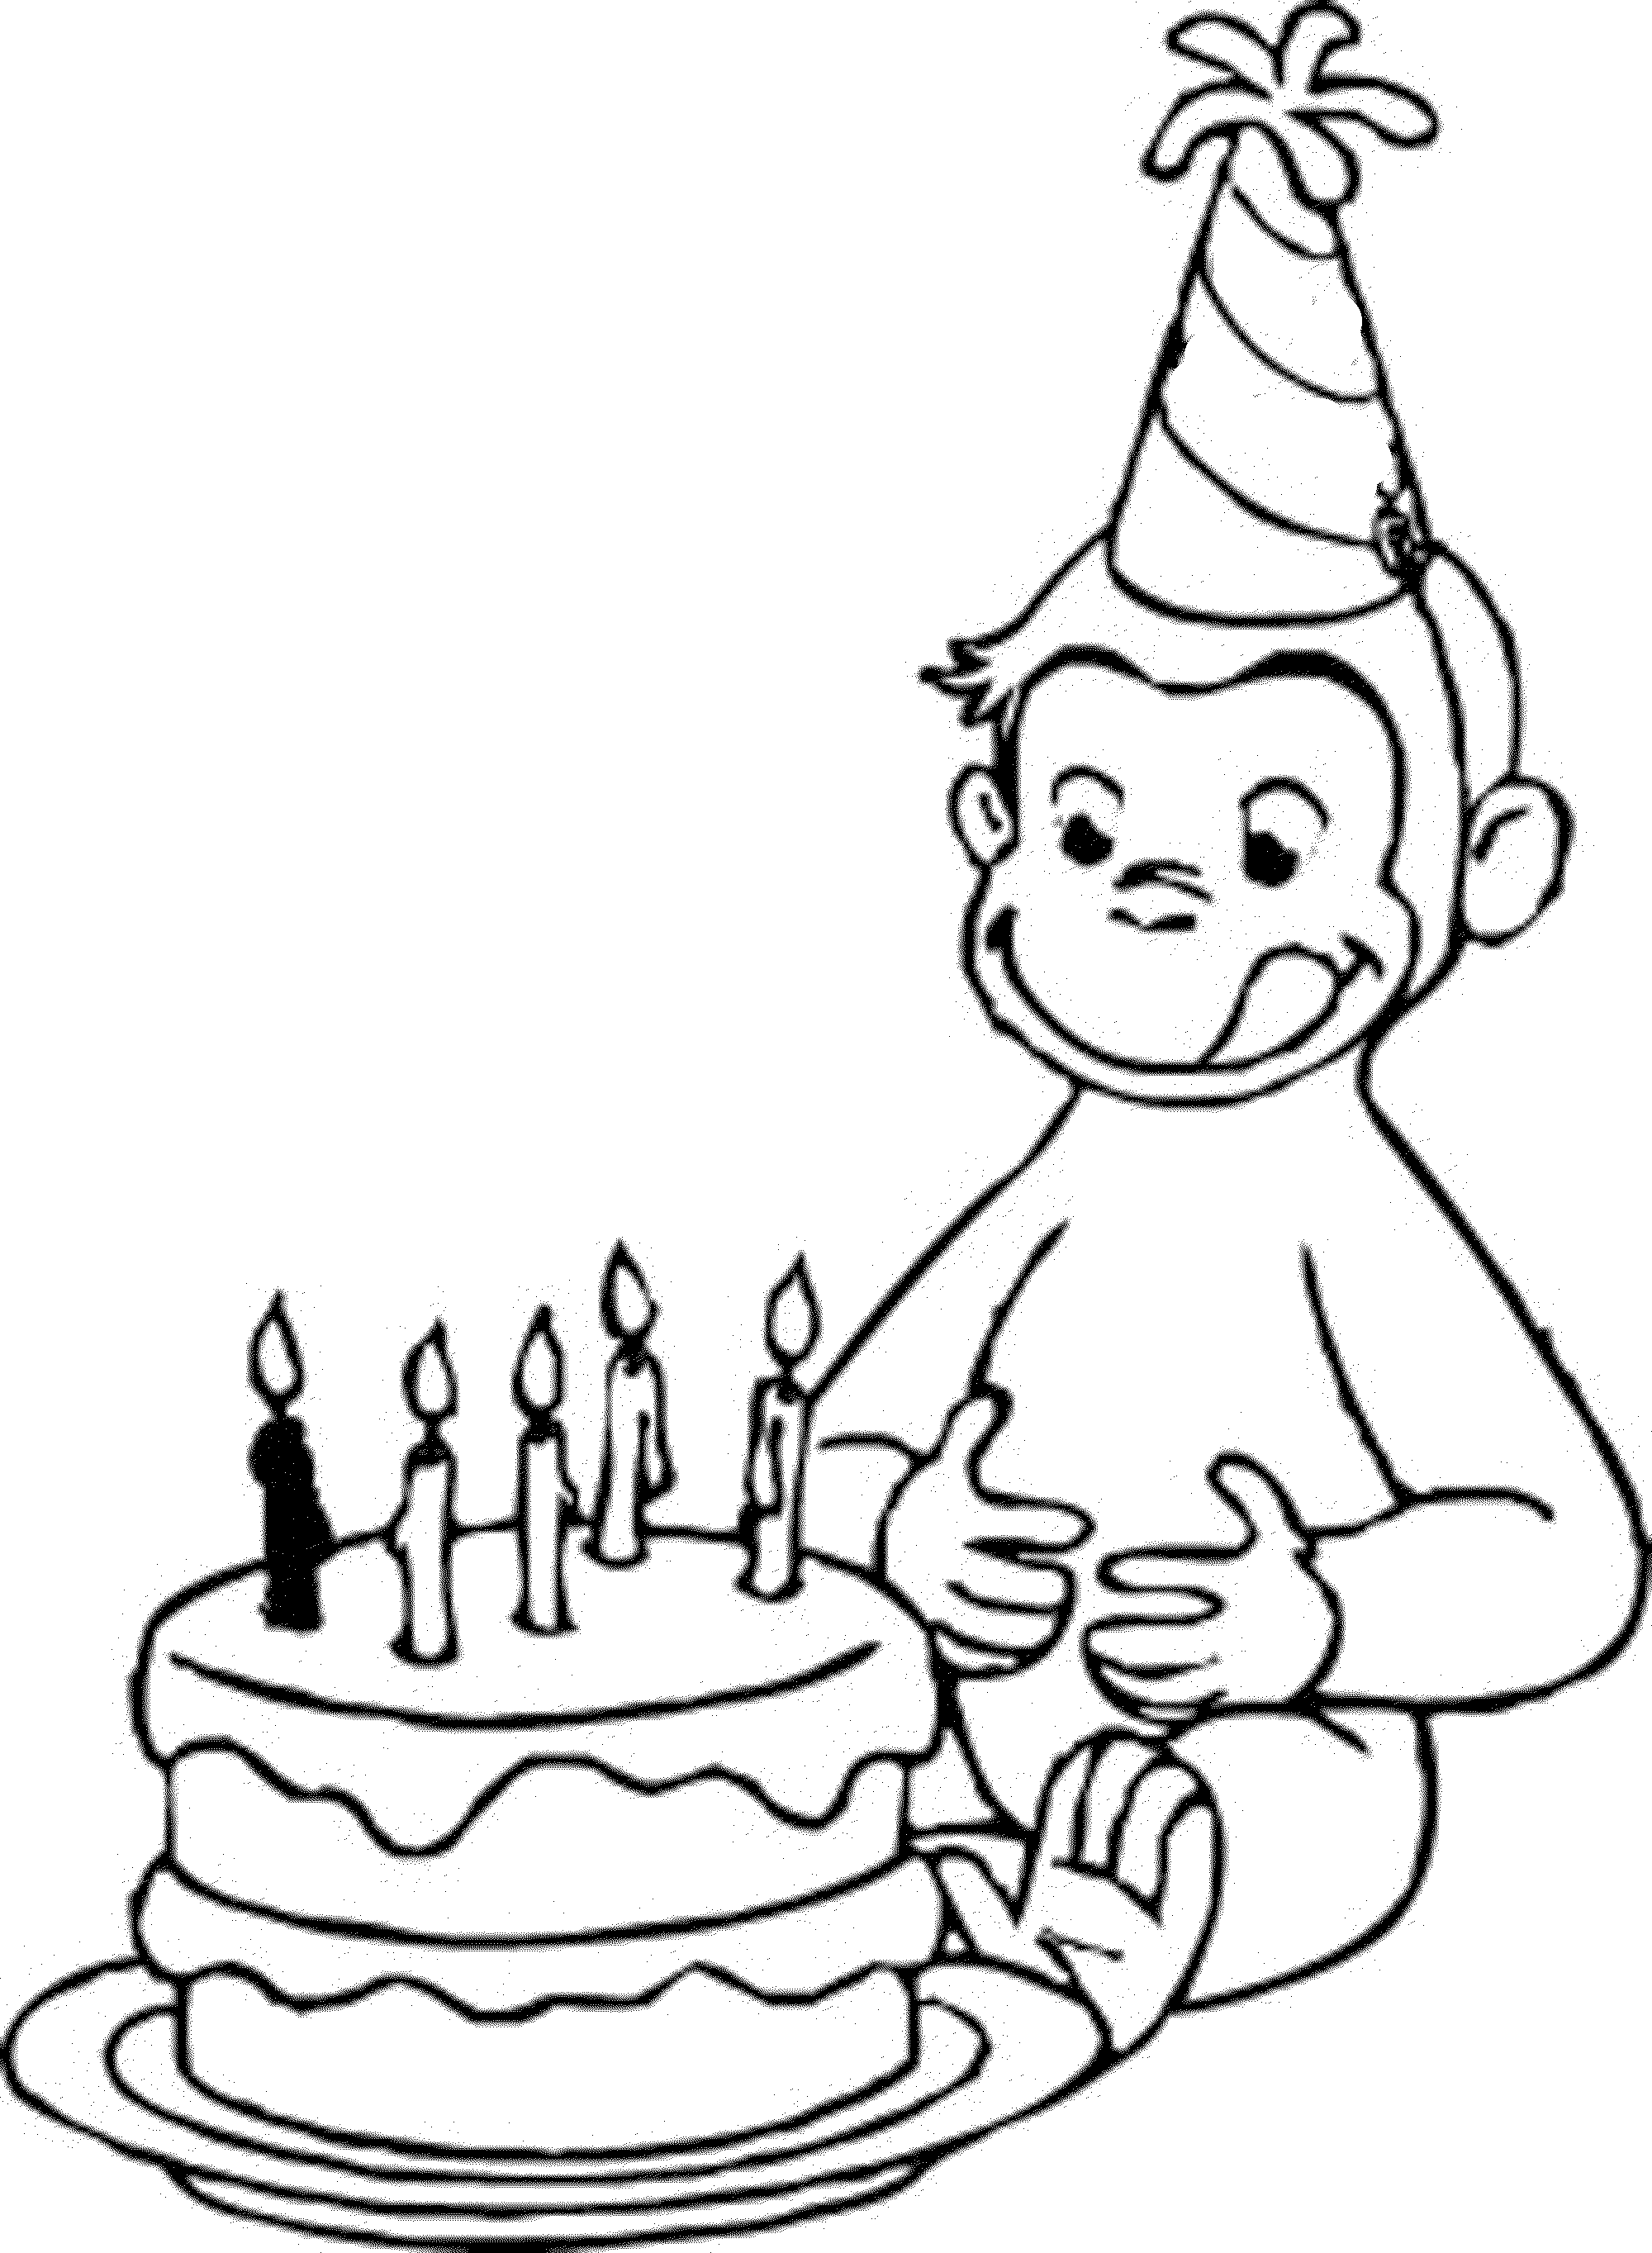 happy birthday coloring pages birthday cake coloring pages to download and print for free pages happy birthday coloring